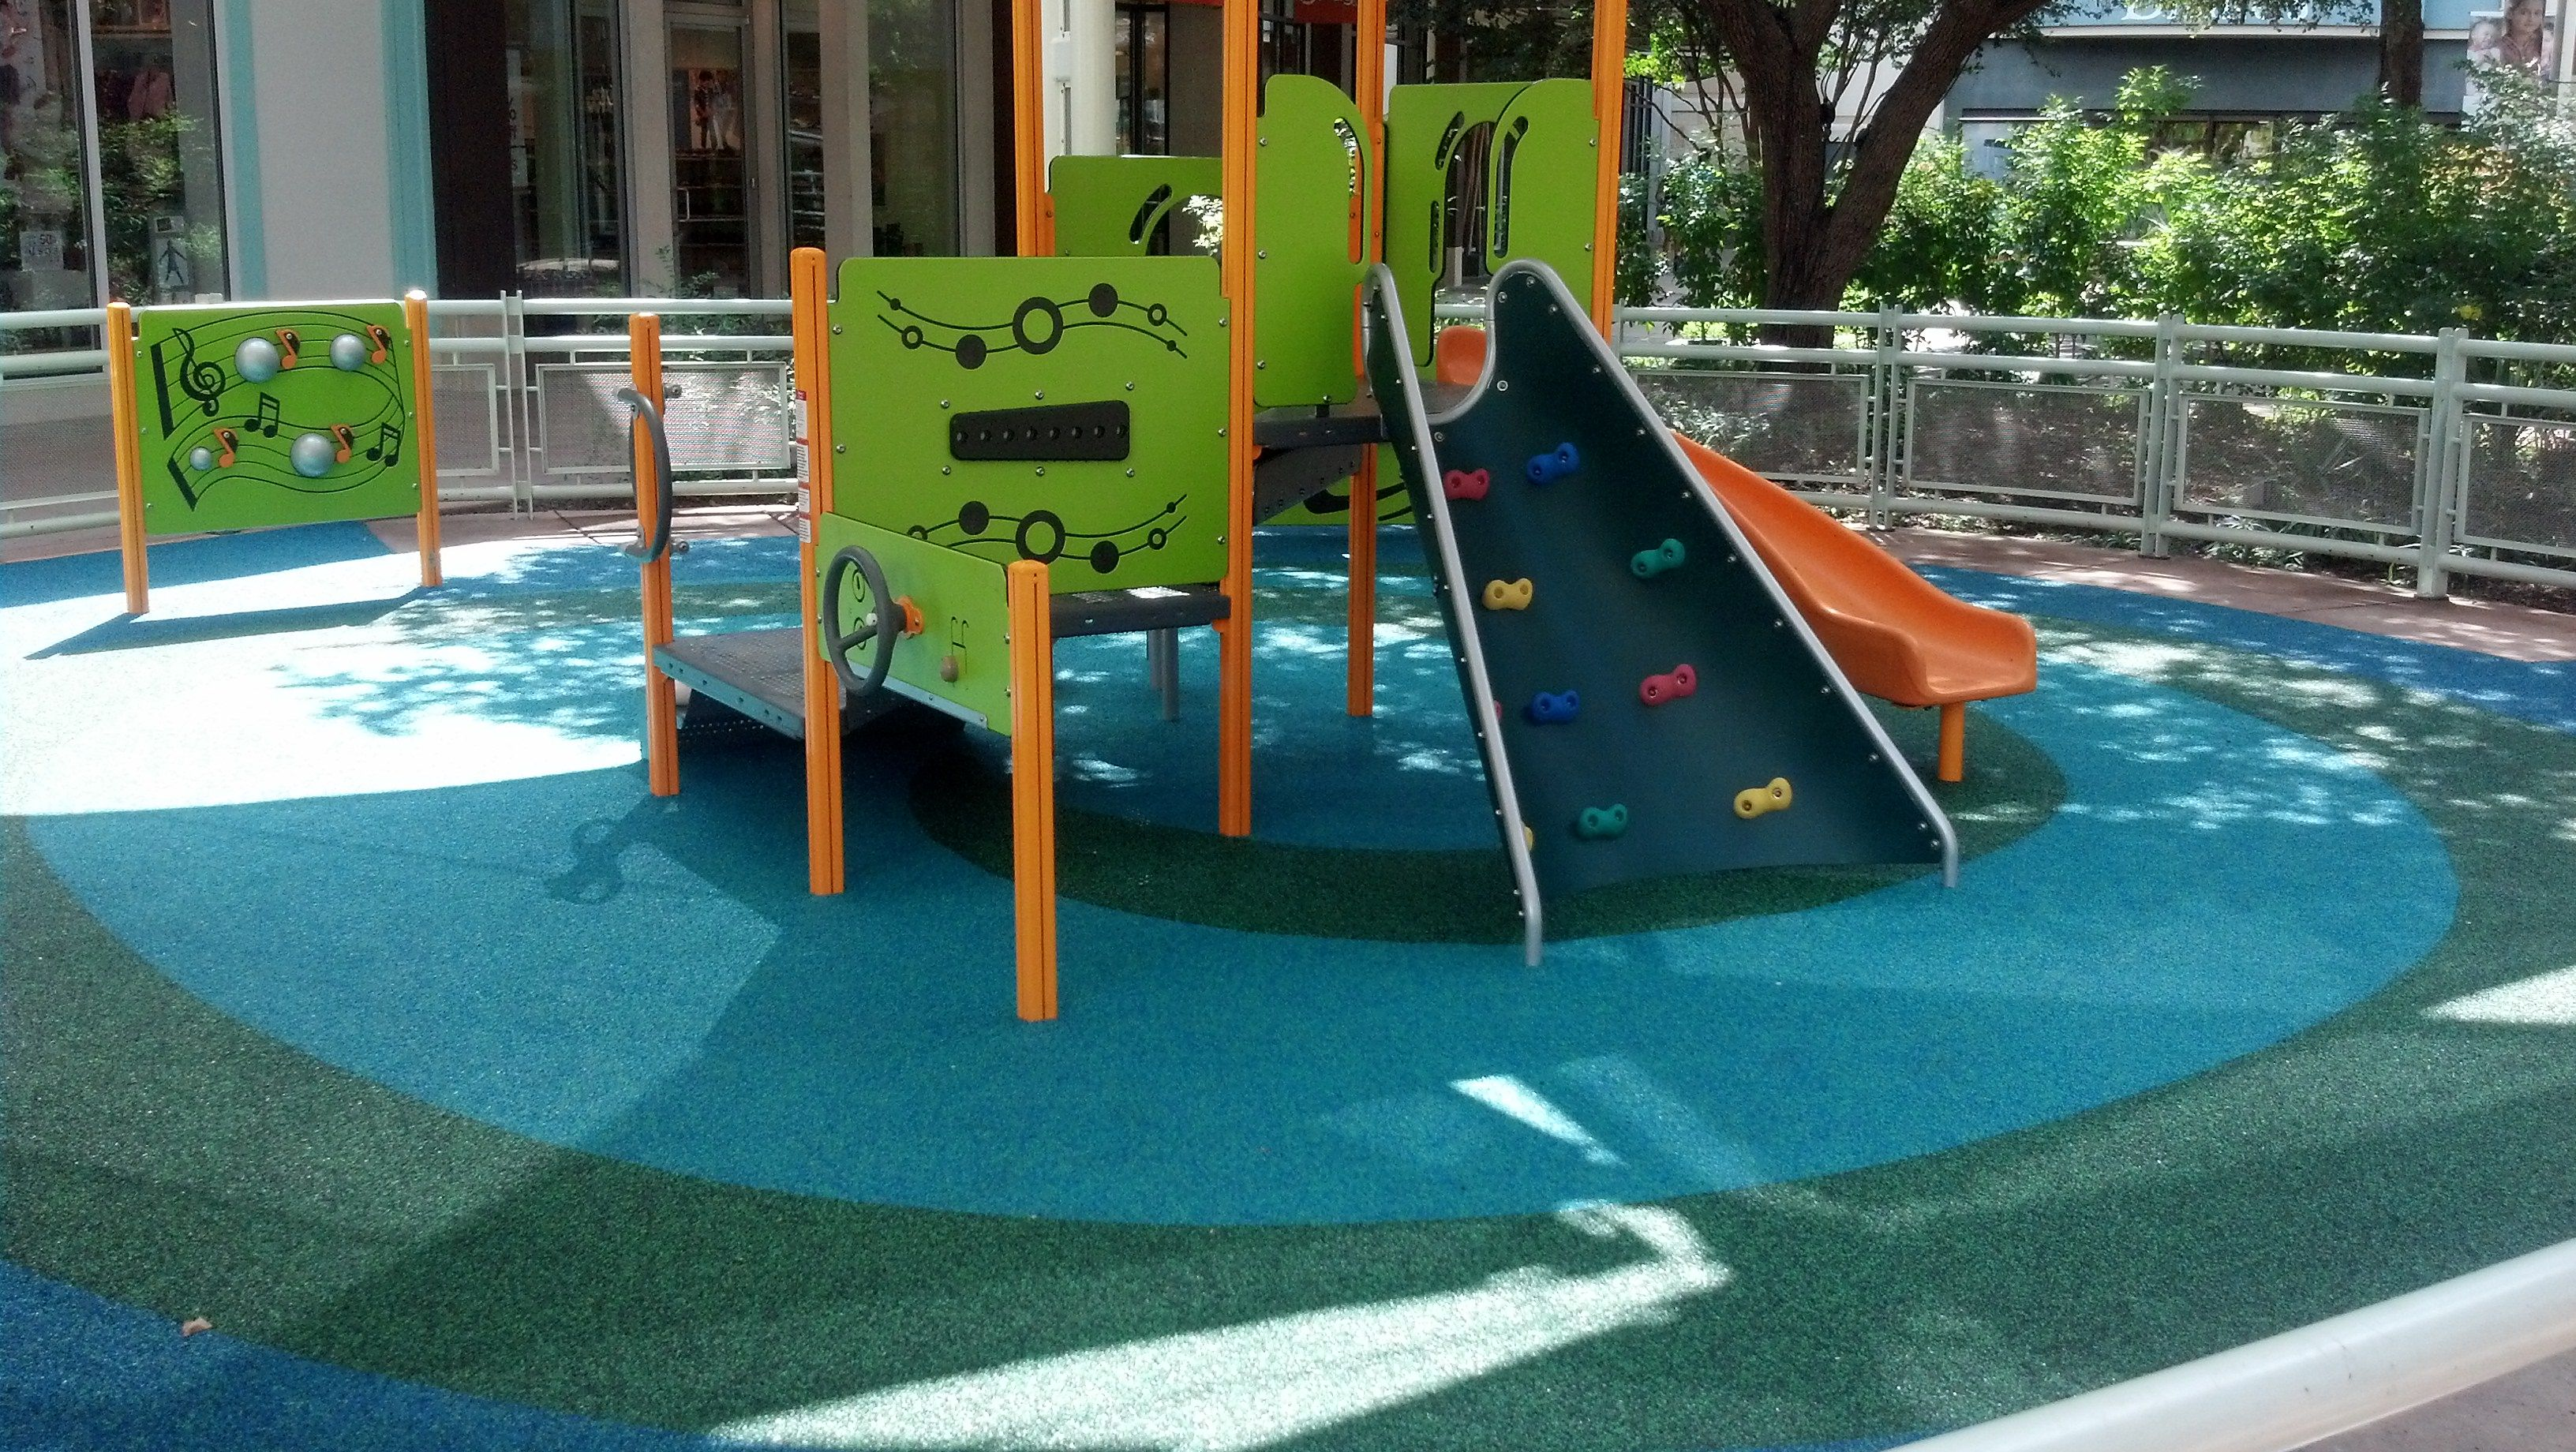 No Fault Installed Our Rubber Surfacing For The Playground Area At The Shops  At La Cantera In San Antonio, TX. They Wanted A Safe, Yet Fun Looking, ...